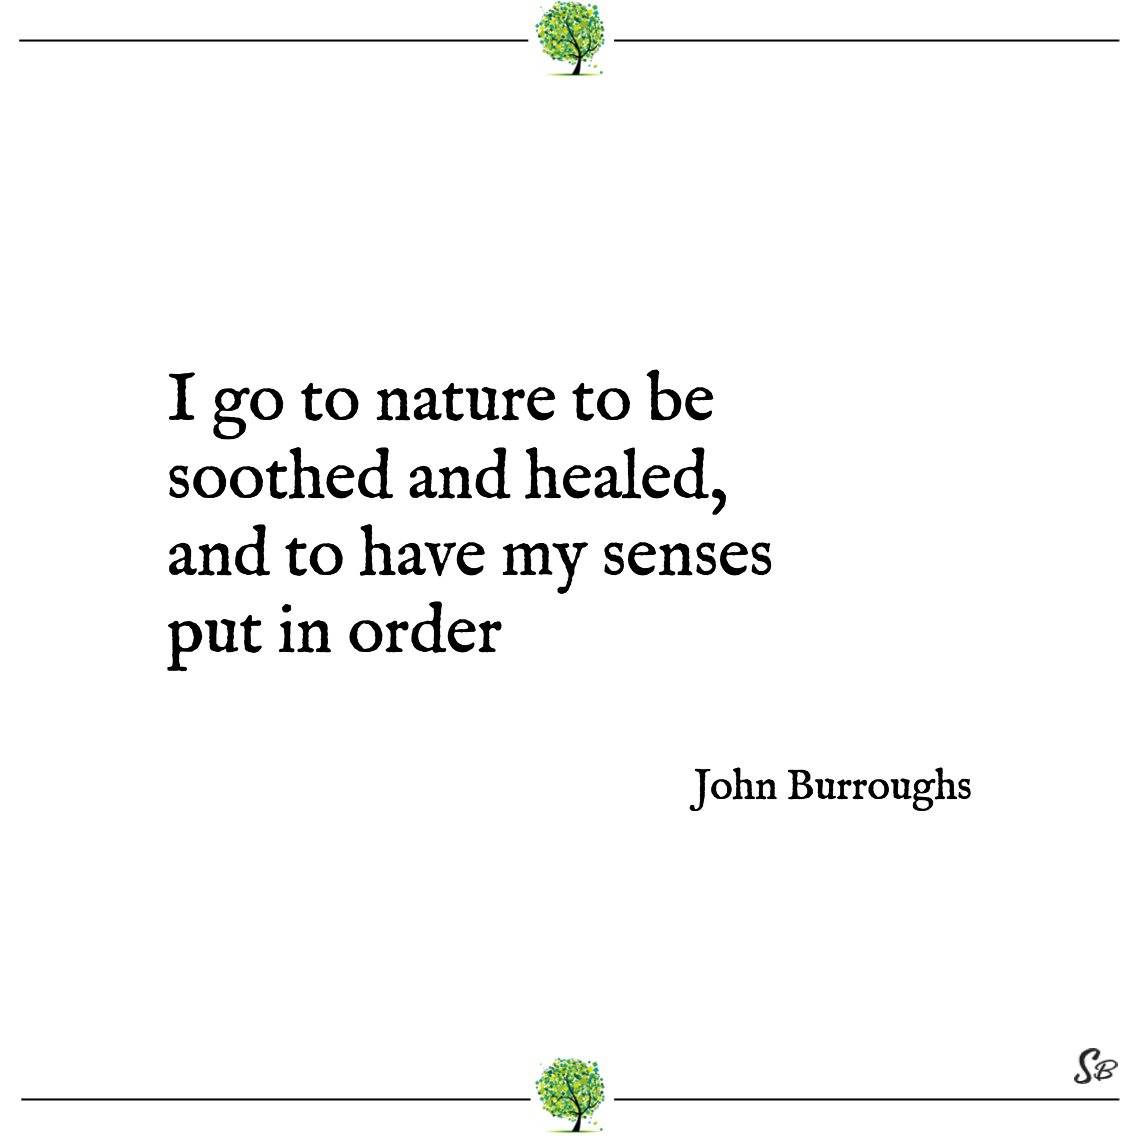 I go to nature to be soothed and healed, and to have my senses put in order john burroughs